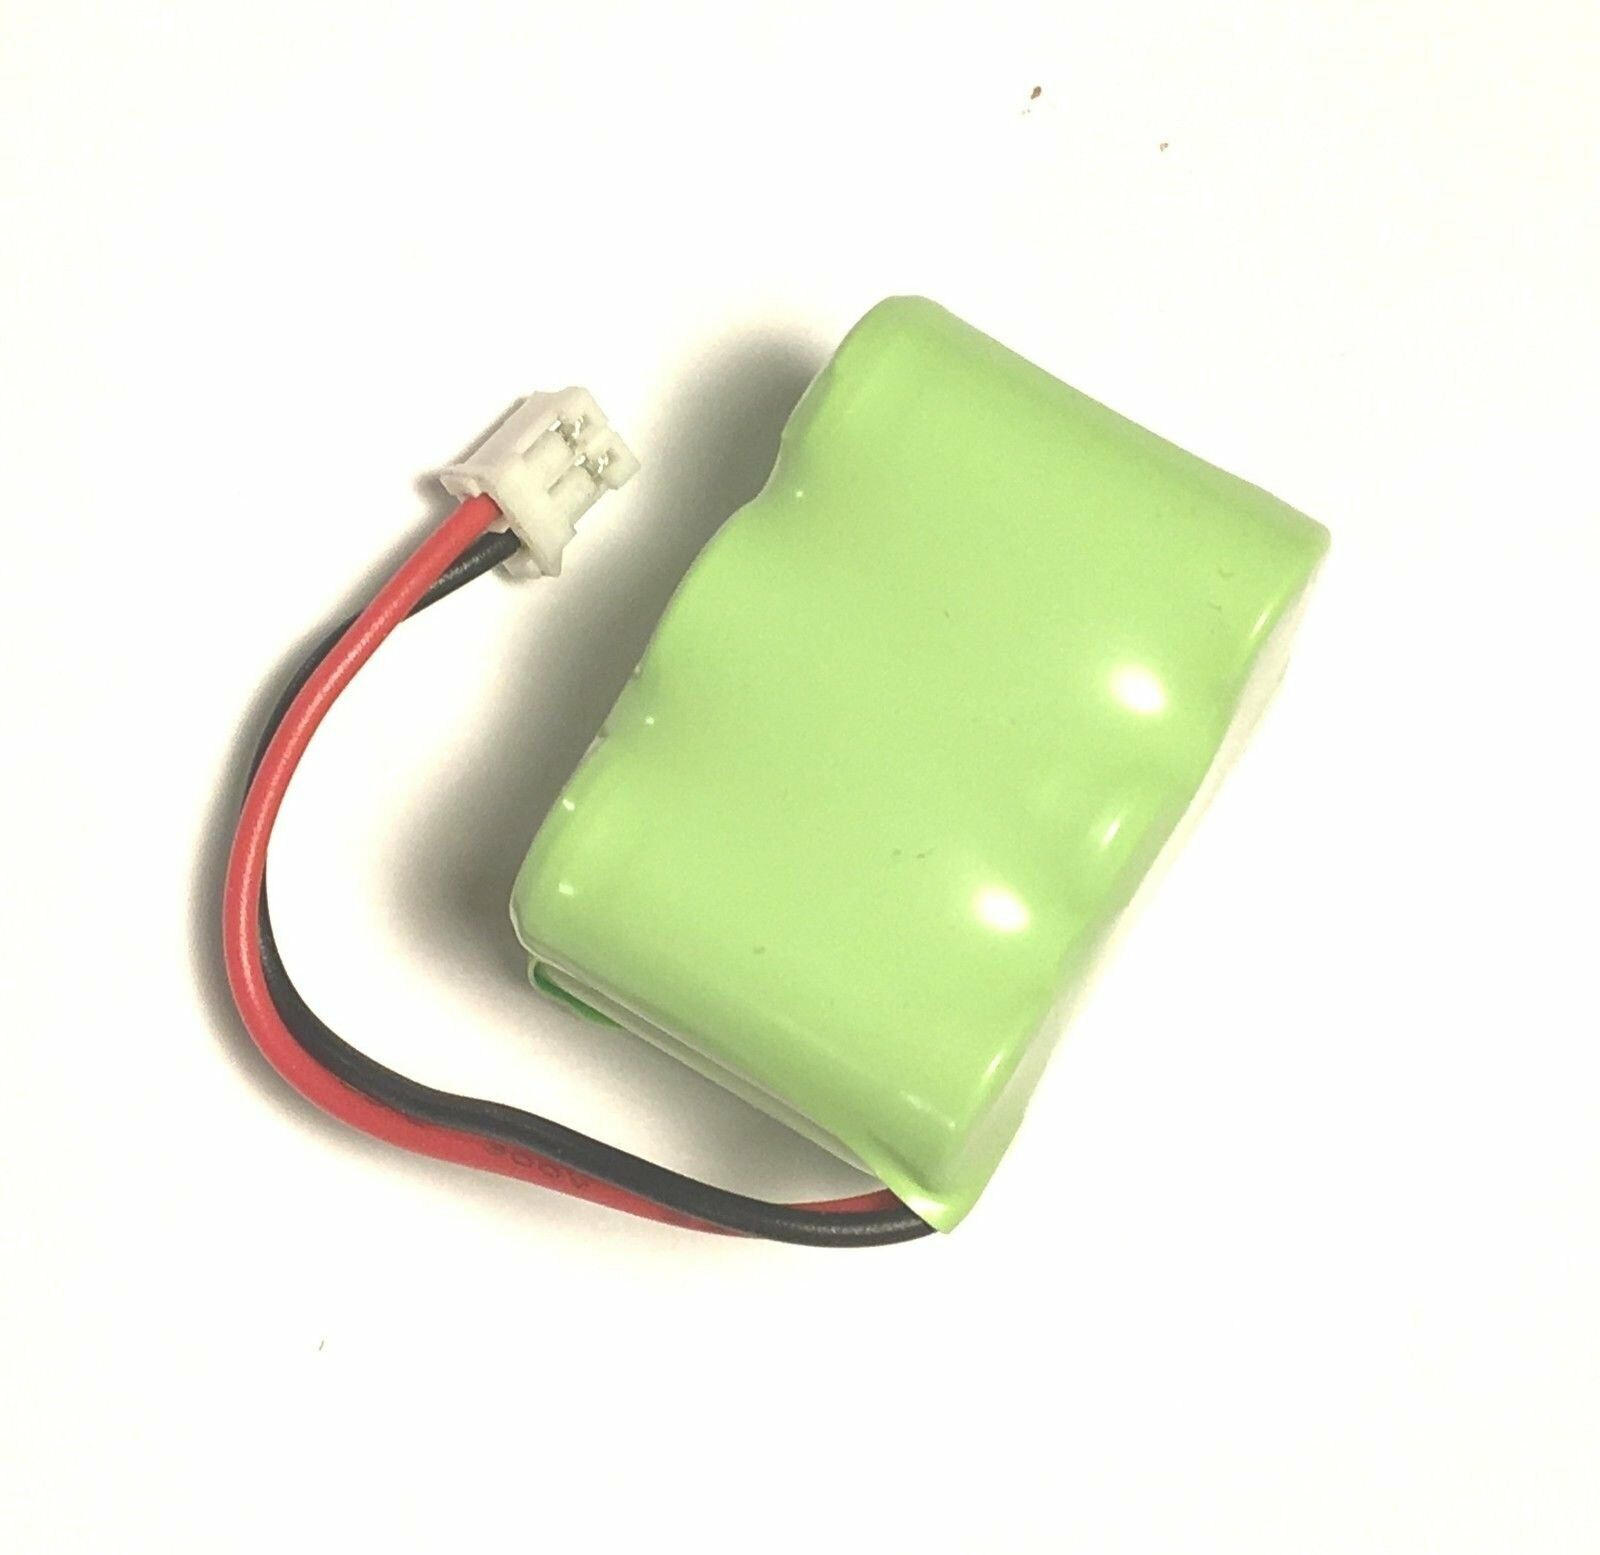 VINTRONS Ni-MH BATTERY Pack Fits Sportdog SportHunter SD-800 ST-120 transmitter MH250AAAN6HC 650-104 DC-23